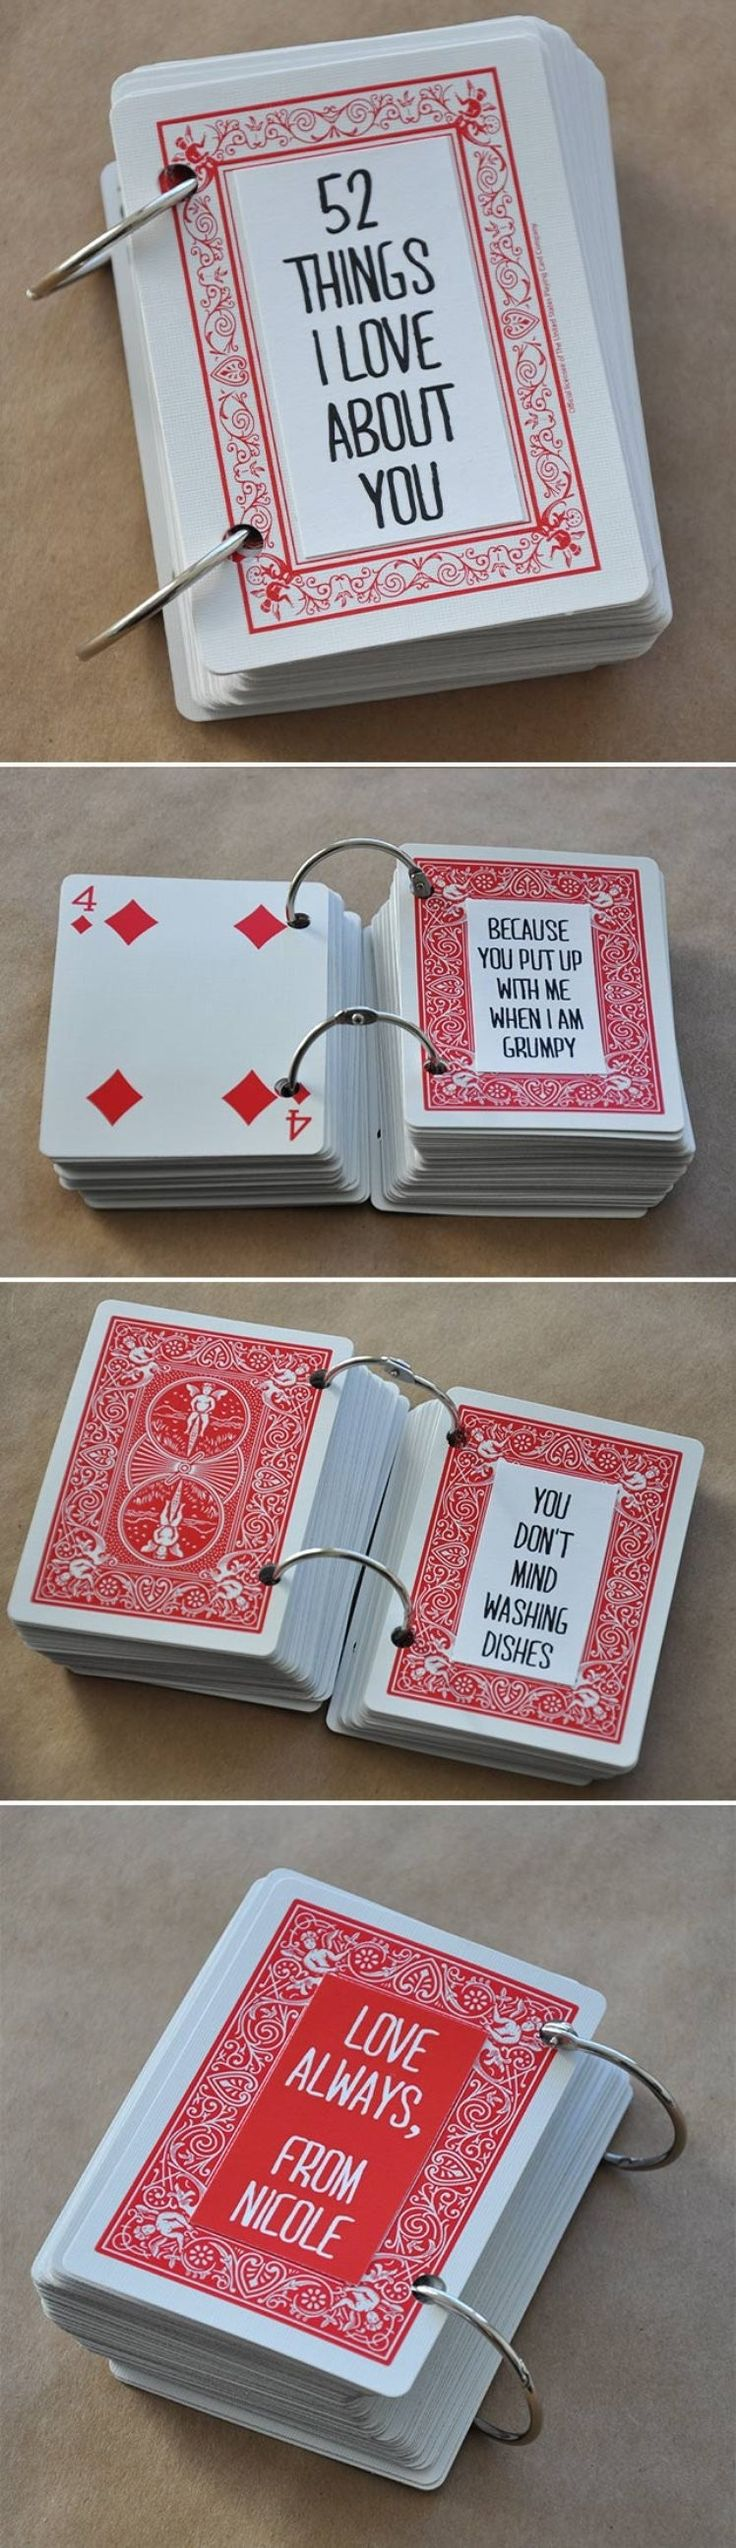 This Simple Valentine's Day Gift Idea Will Save The Day - Bored!